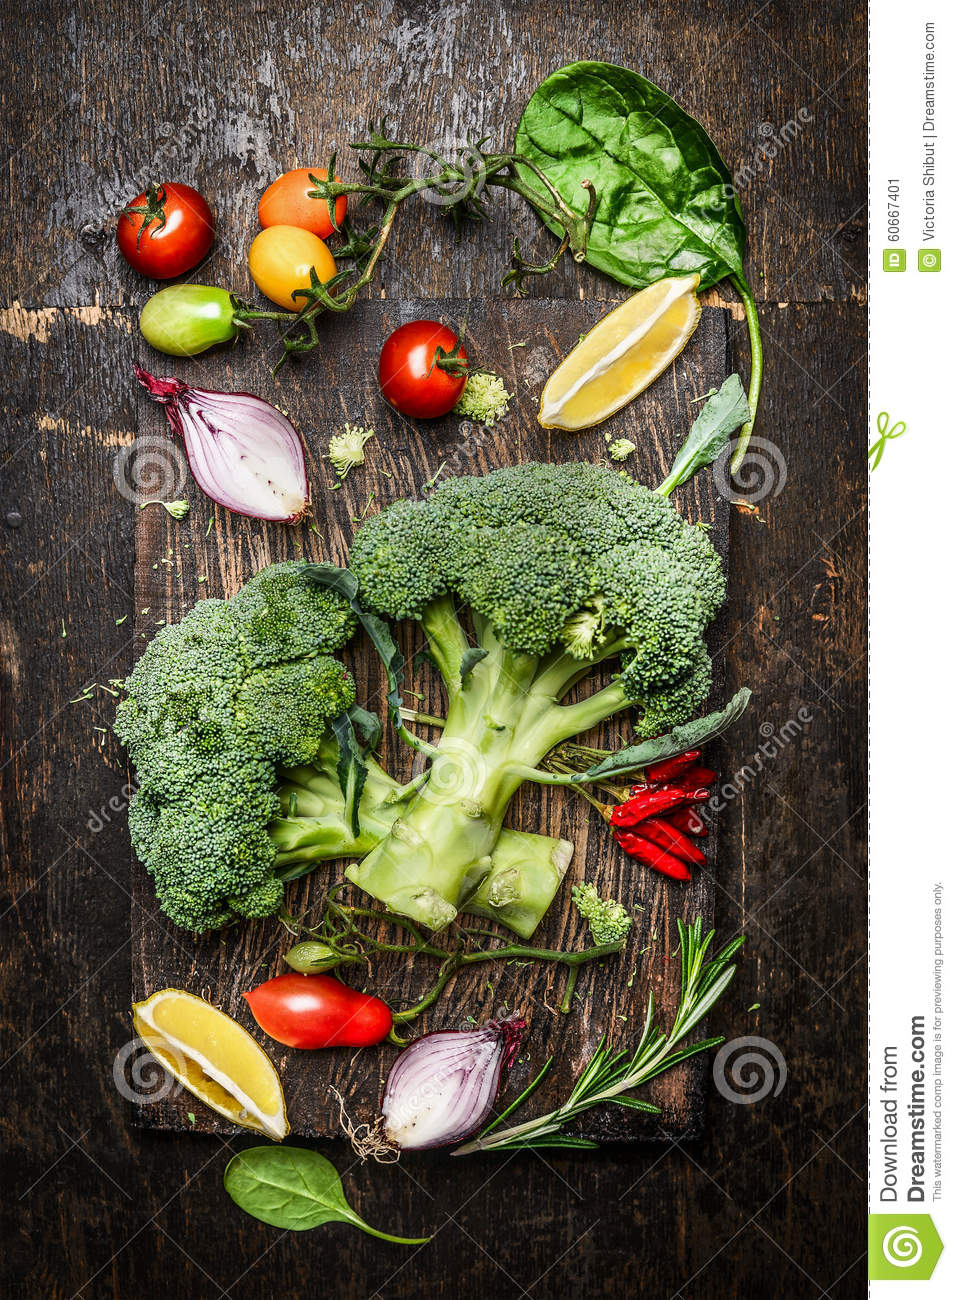 Fresh broccoli and vegetables ingredients and seasoning for tasty vegetarian cooking on rustic wooden background, top view